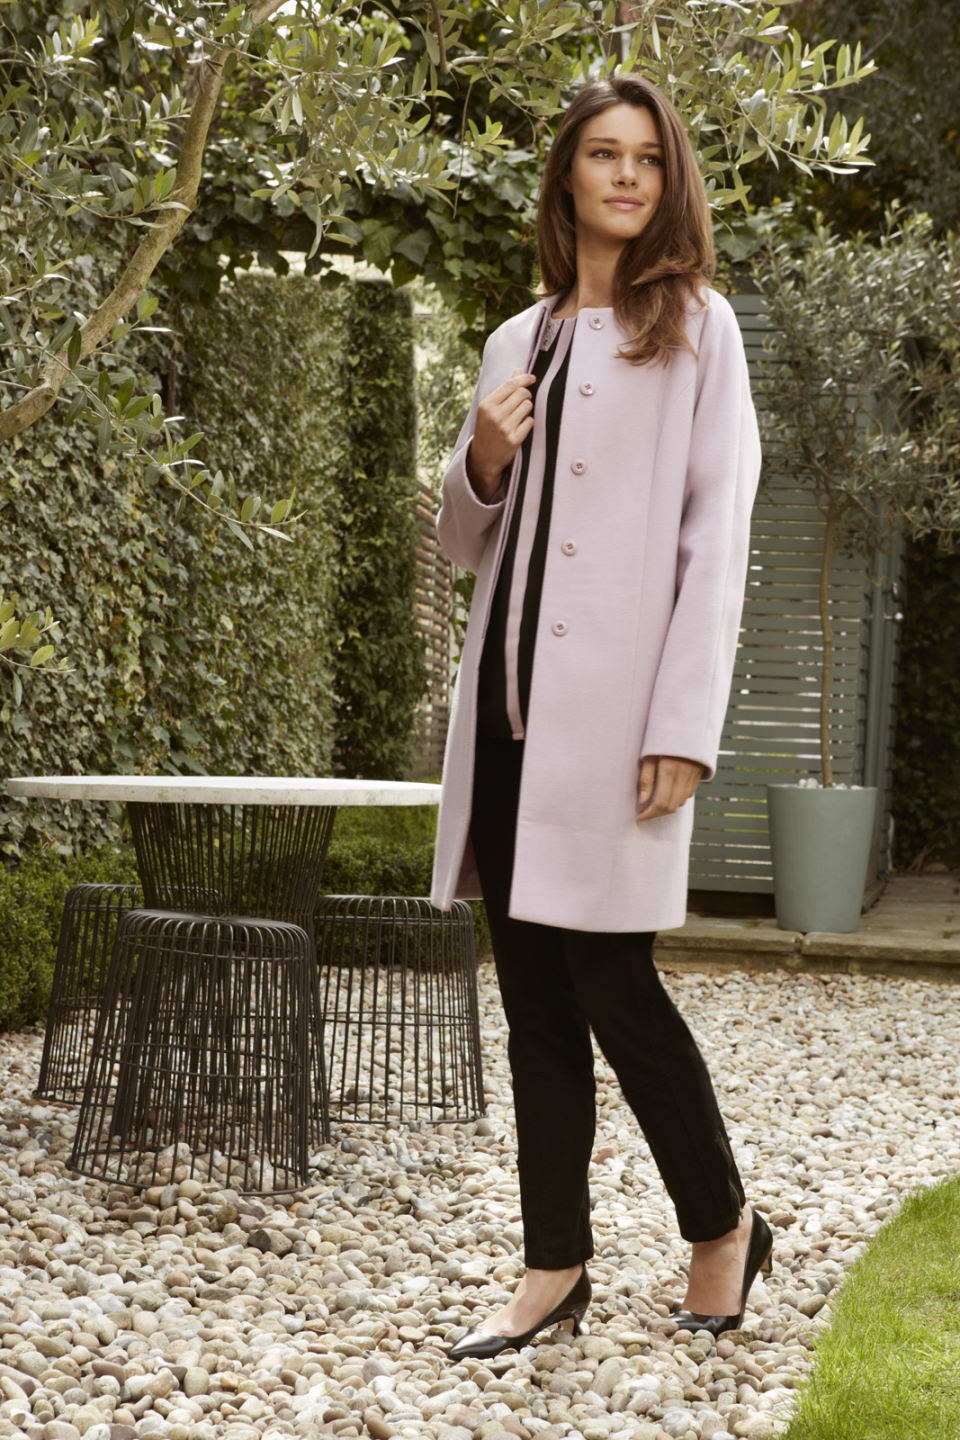 Mark_Heyes_for_Marisota_Pink_Collarless_Coat_£49_Contract_Collar_Blouse_£35_960_1440